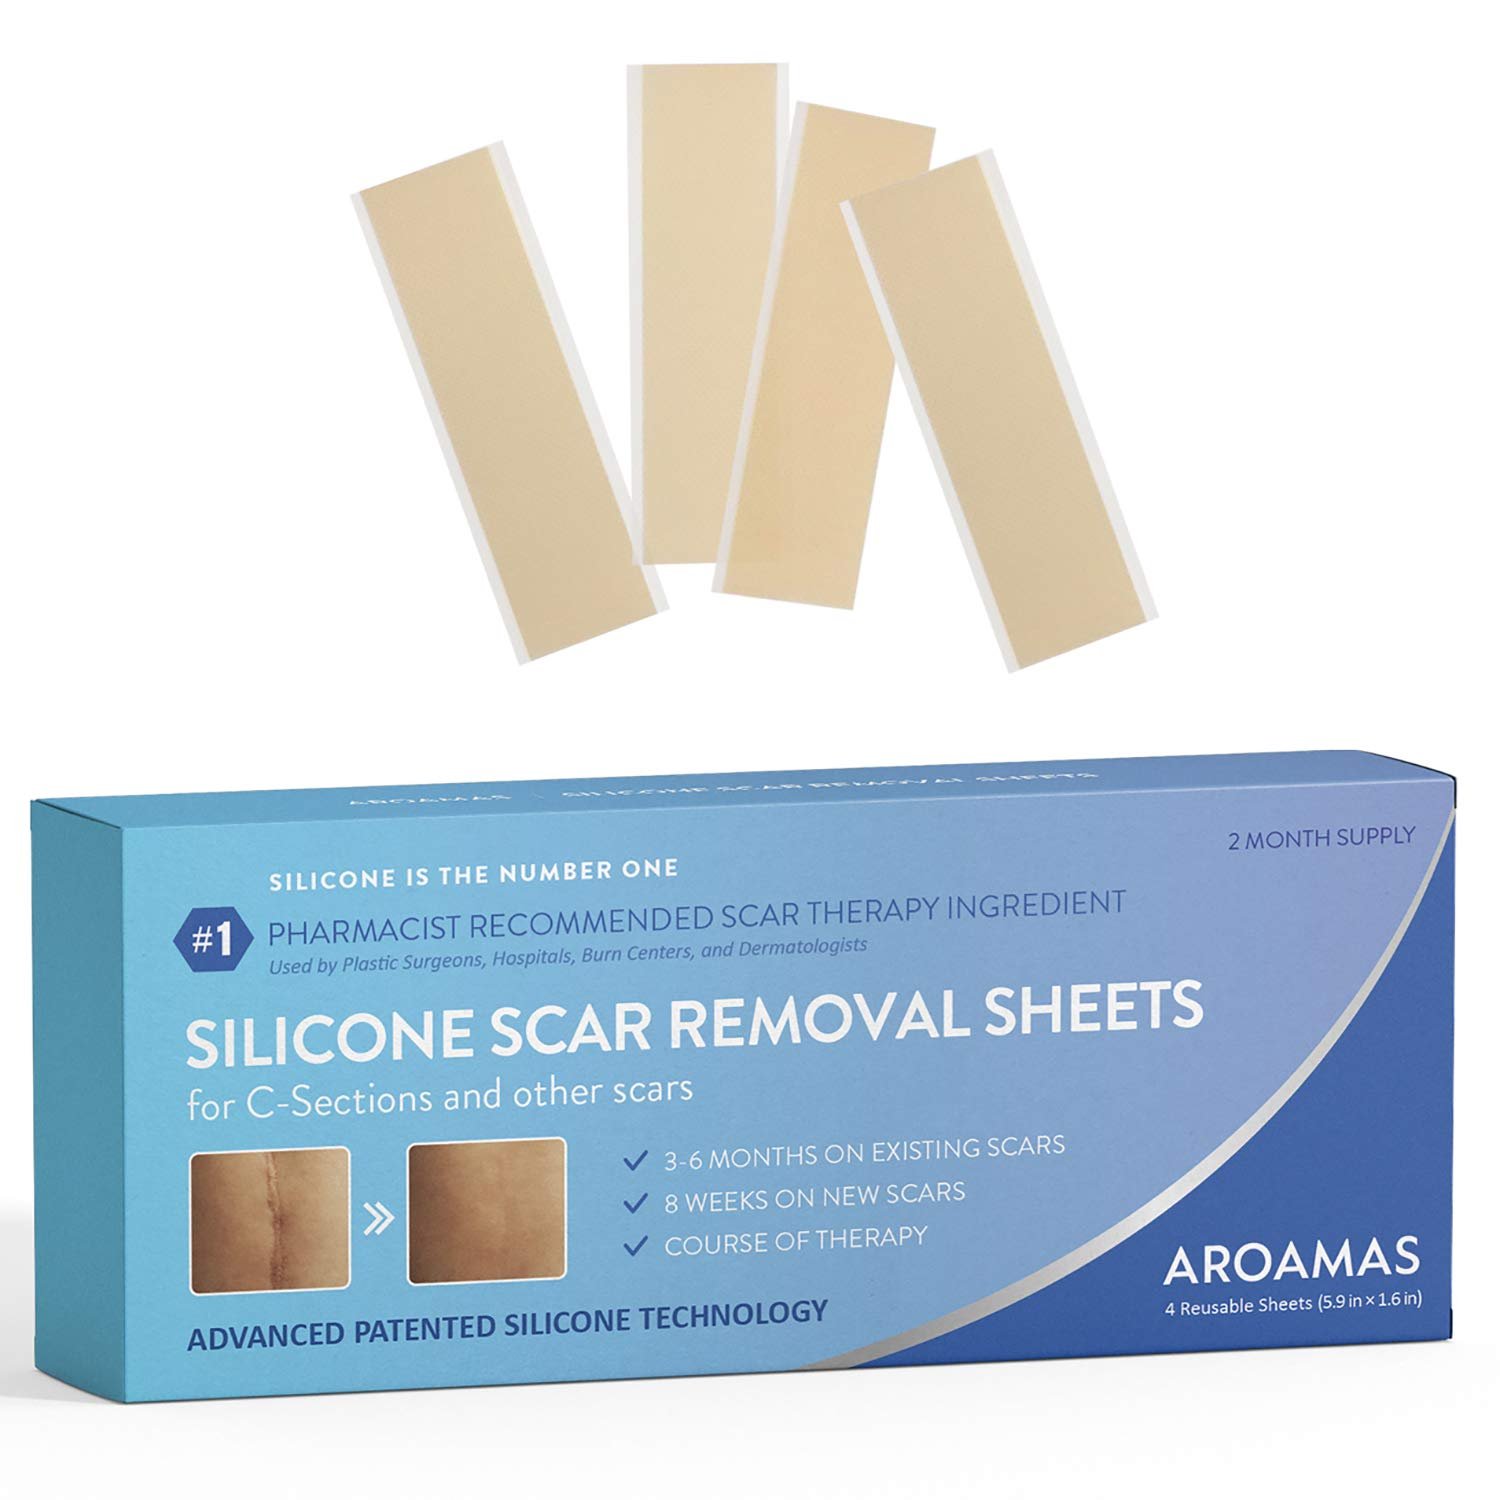 """Aroamas Professional Silicone Scar Removal Sheets for Scars Caused by C-Section, Surgery, Burn, Keloid, Acne, and more, Soft Adhesive Fabric Strips, Drug-Free, 5.7""""×1.57"""", 4 Reusable pcs (2 Month Supp"""